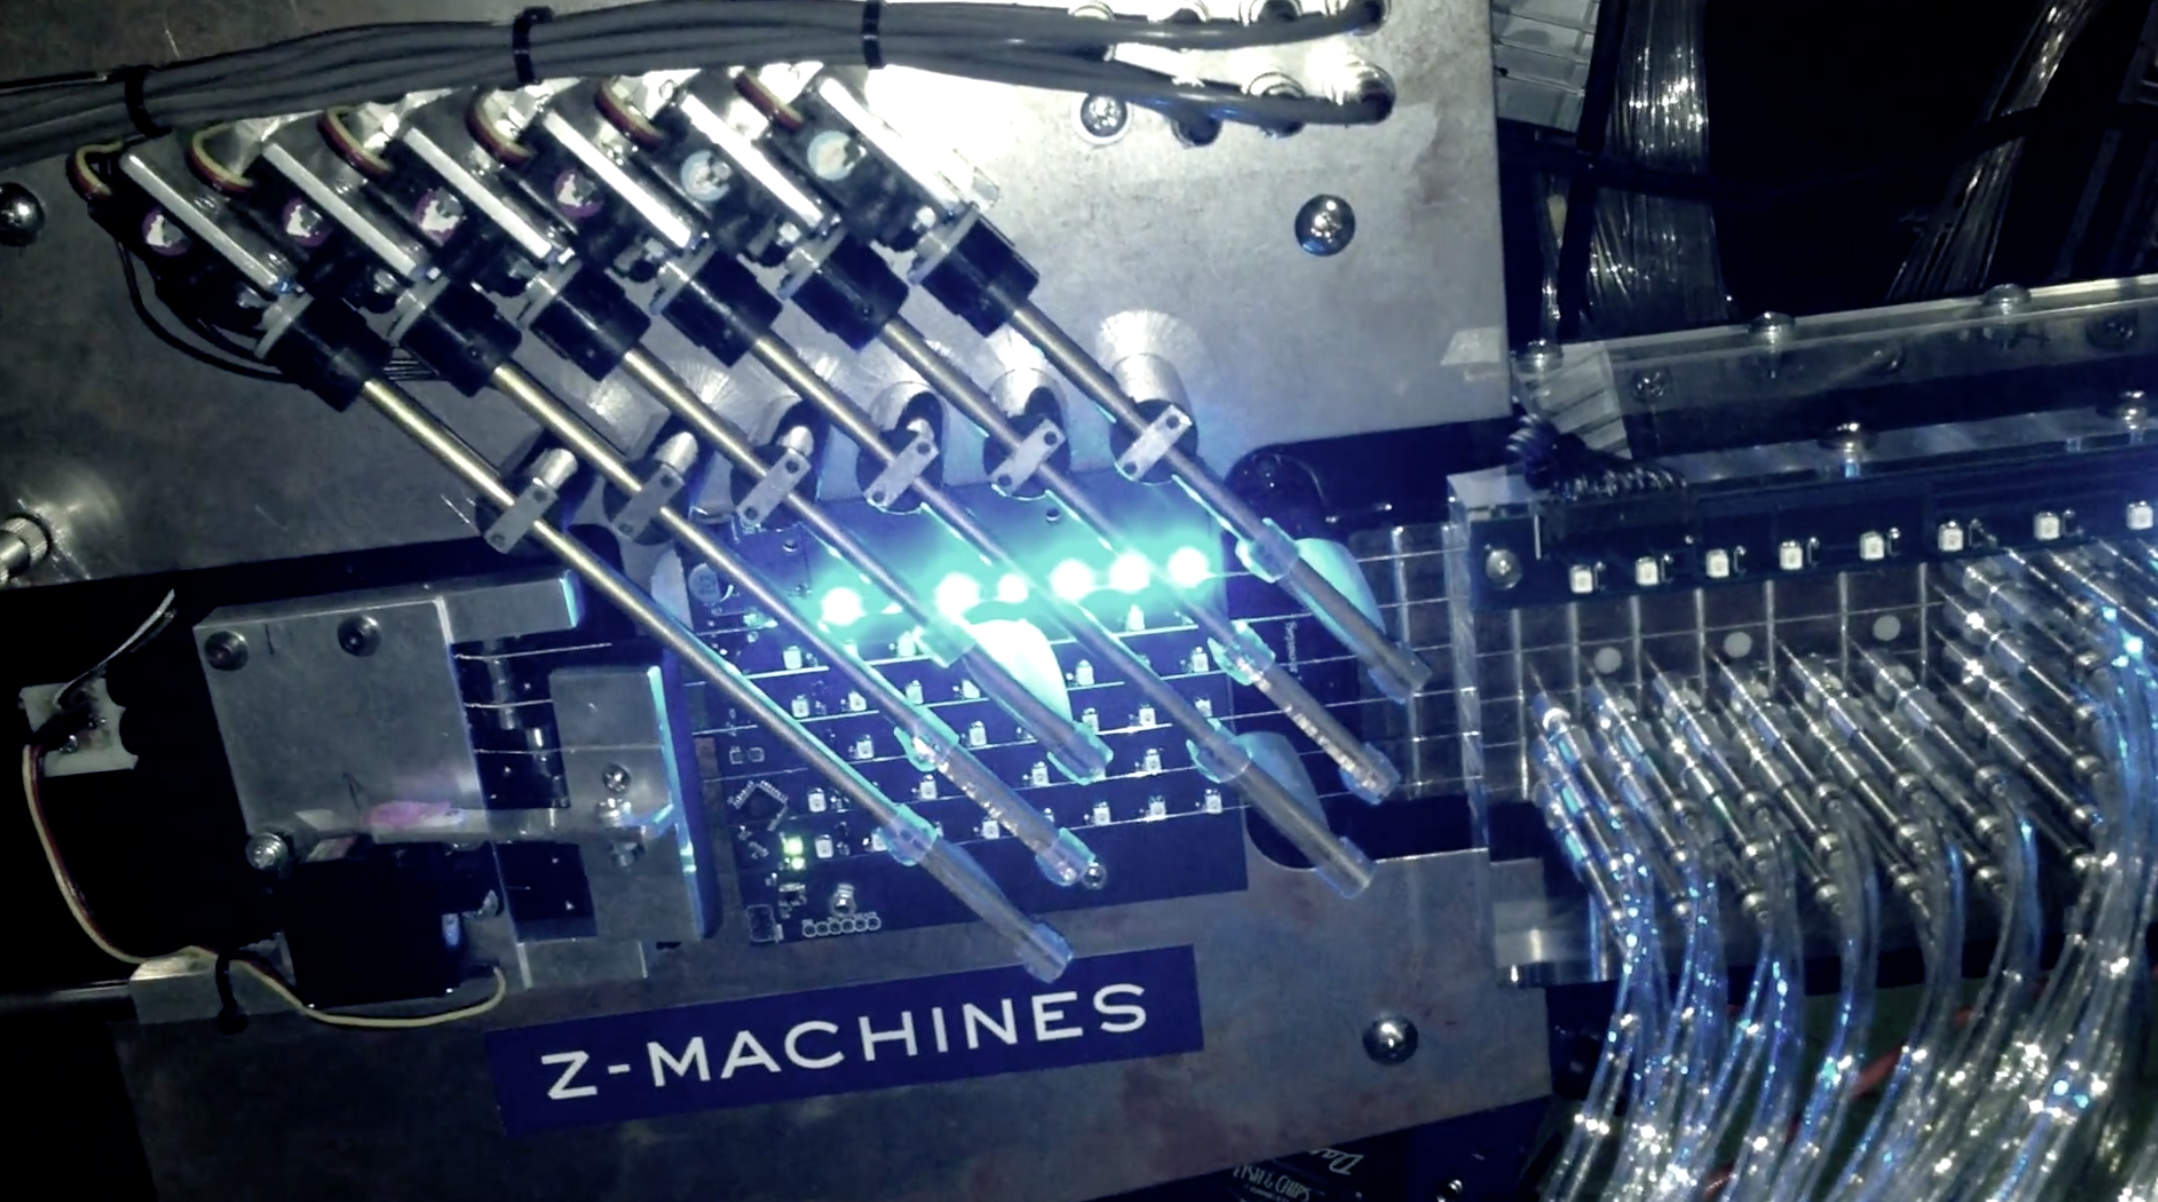 Making of 'Music For Robots'  by Squarepusher, Z-Machines, Warp Records